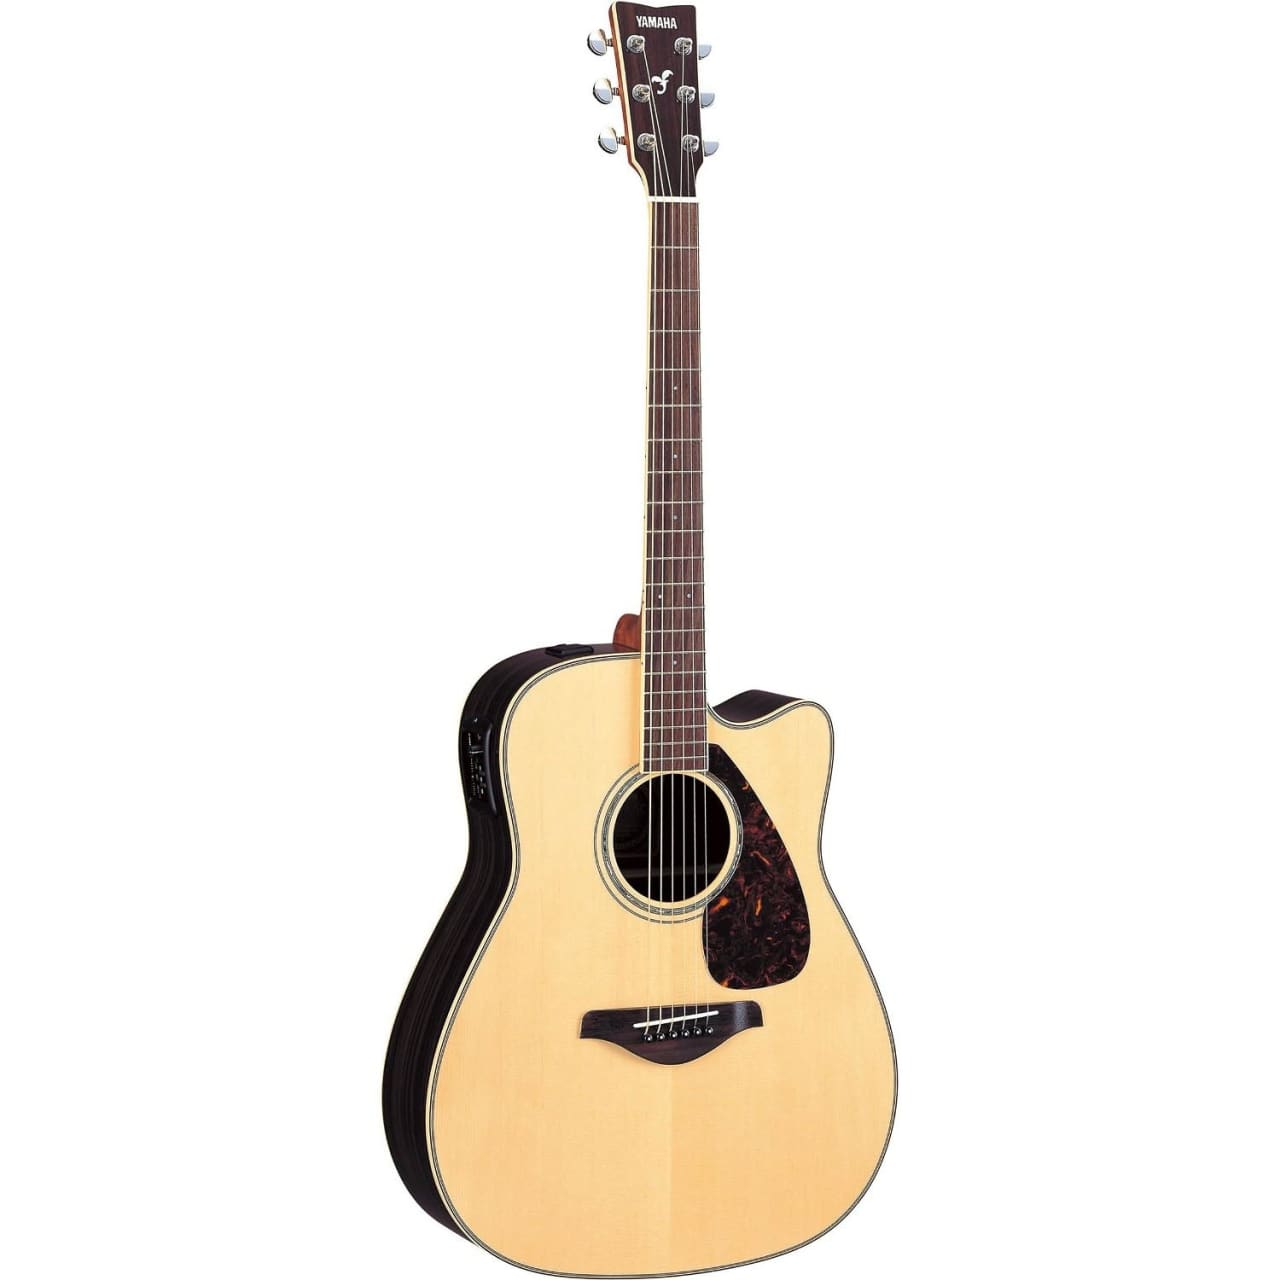 Yamaha fgx730sc solid spruce top acoustic electric guitar for Yamaha solid top